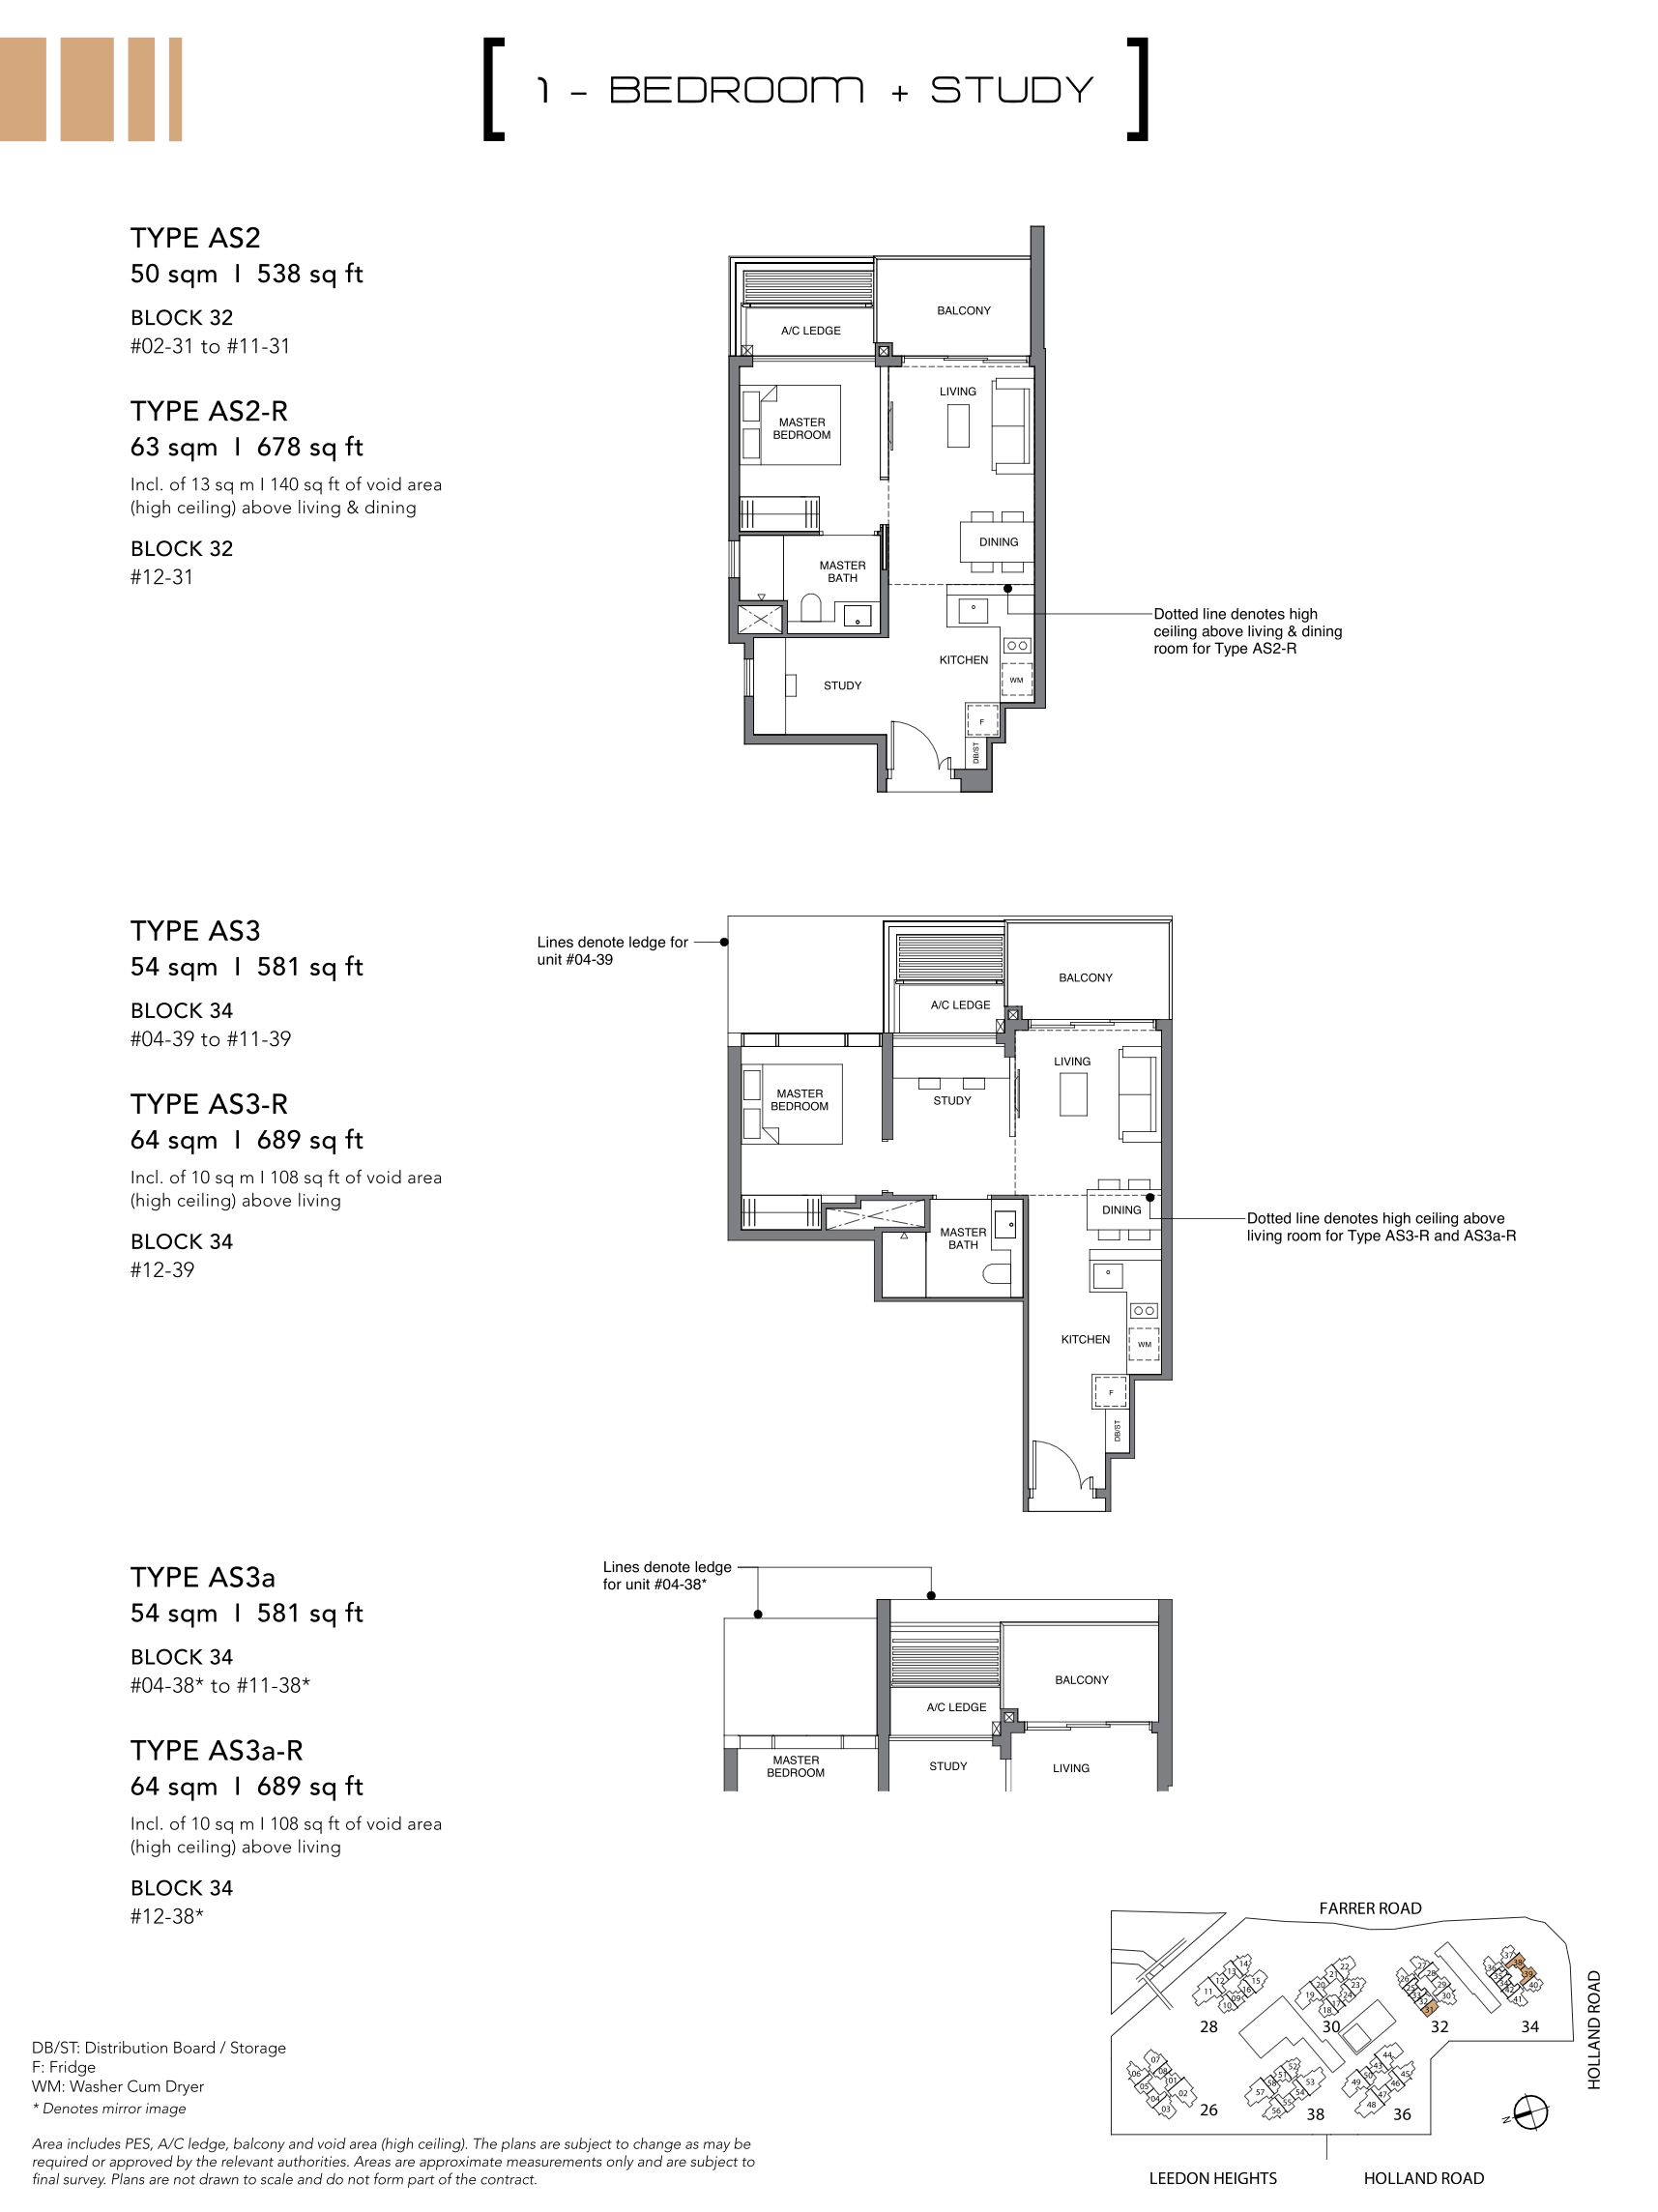 绿墩雅苑公寓户型图 Leedon Green floor plan 1 bedroom + study AS2